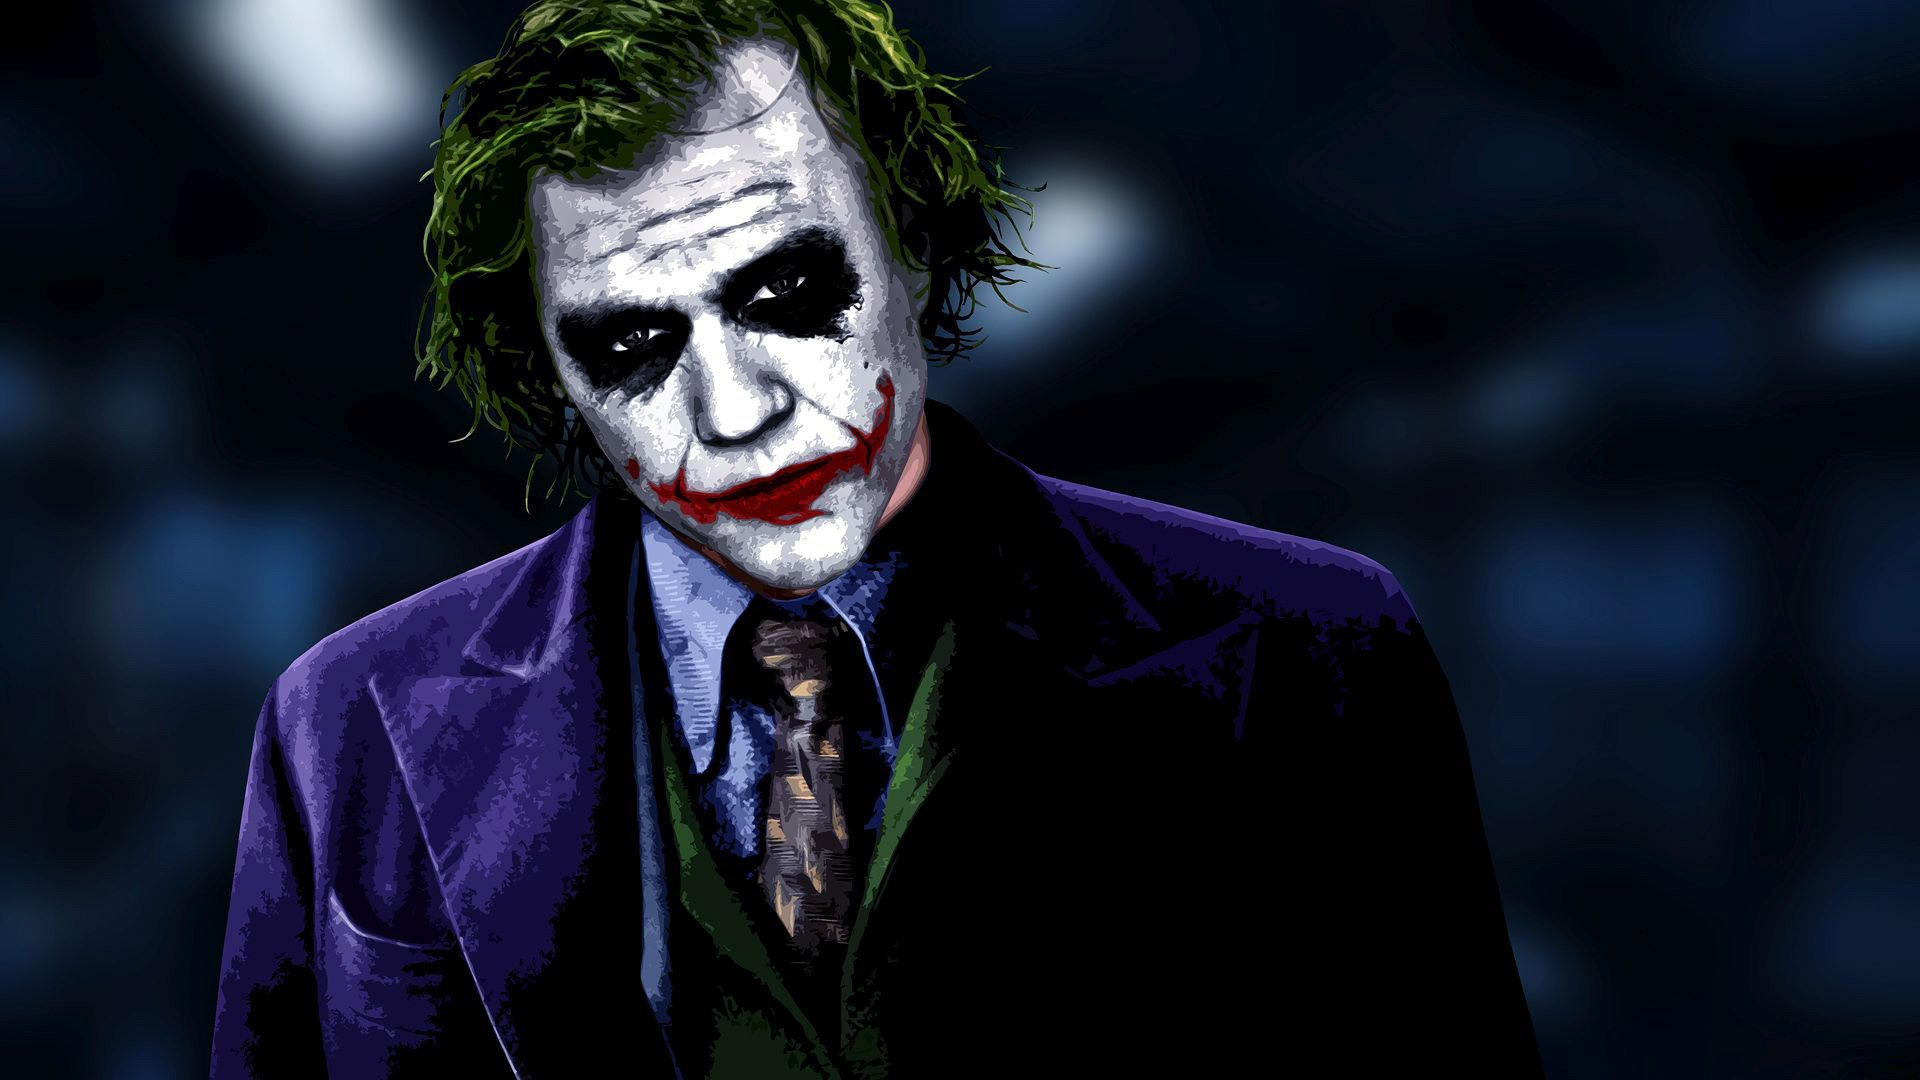 Dark knight Joker wallpapers hd Pictures Live HD 1920x1080